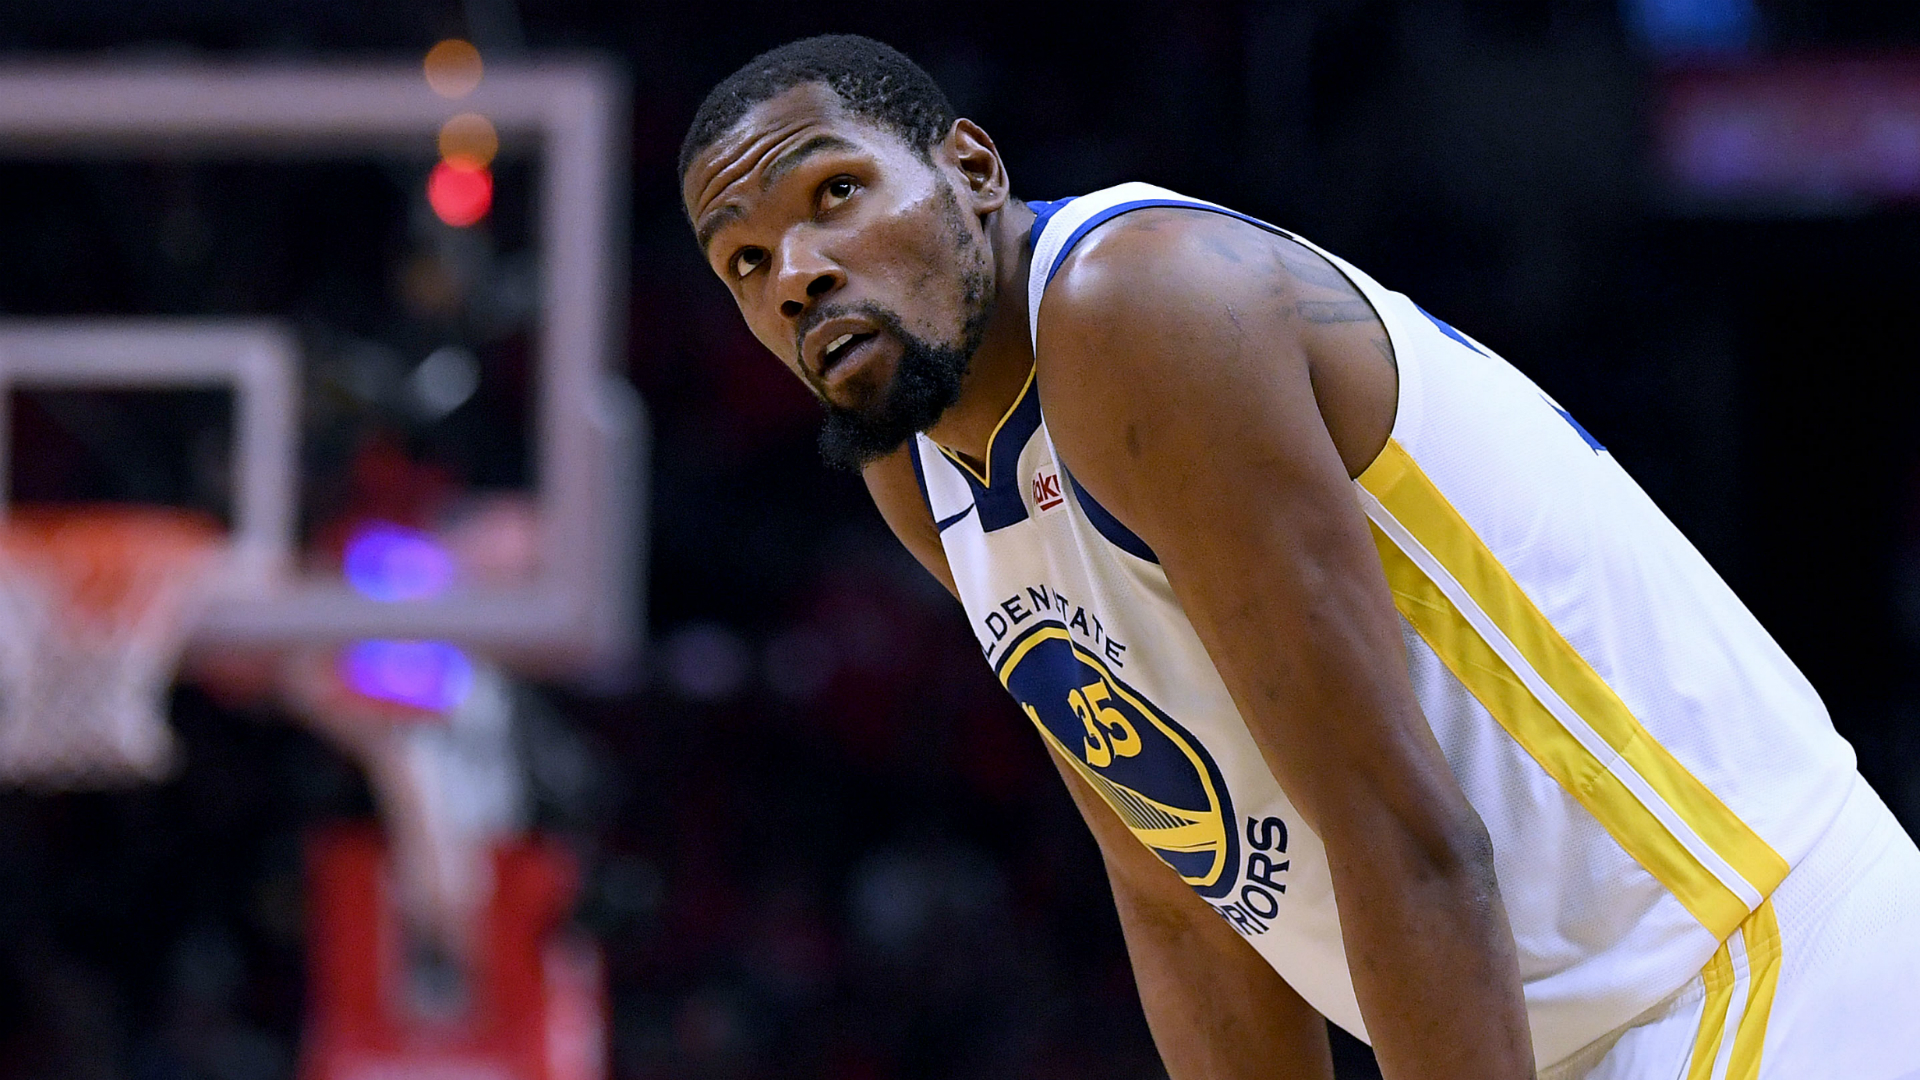 This Week in US Sports: Durant not cleared, Stanton suffers setback